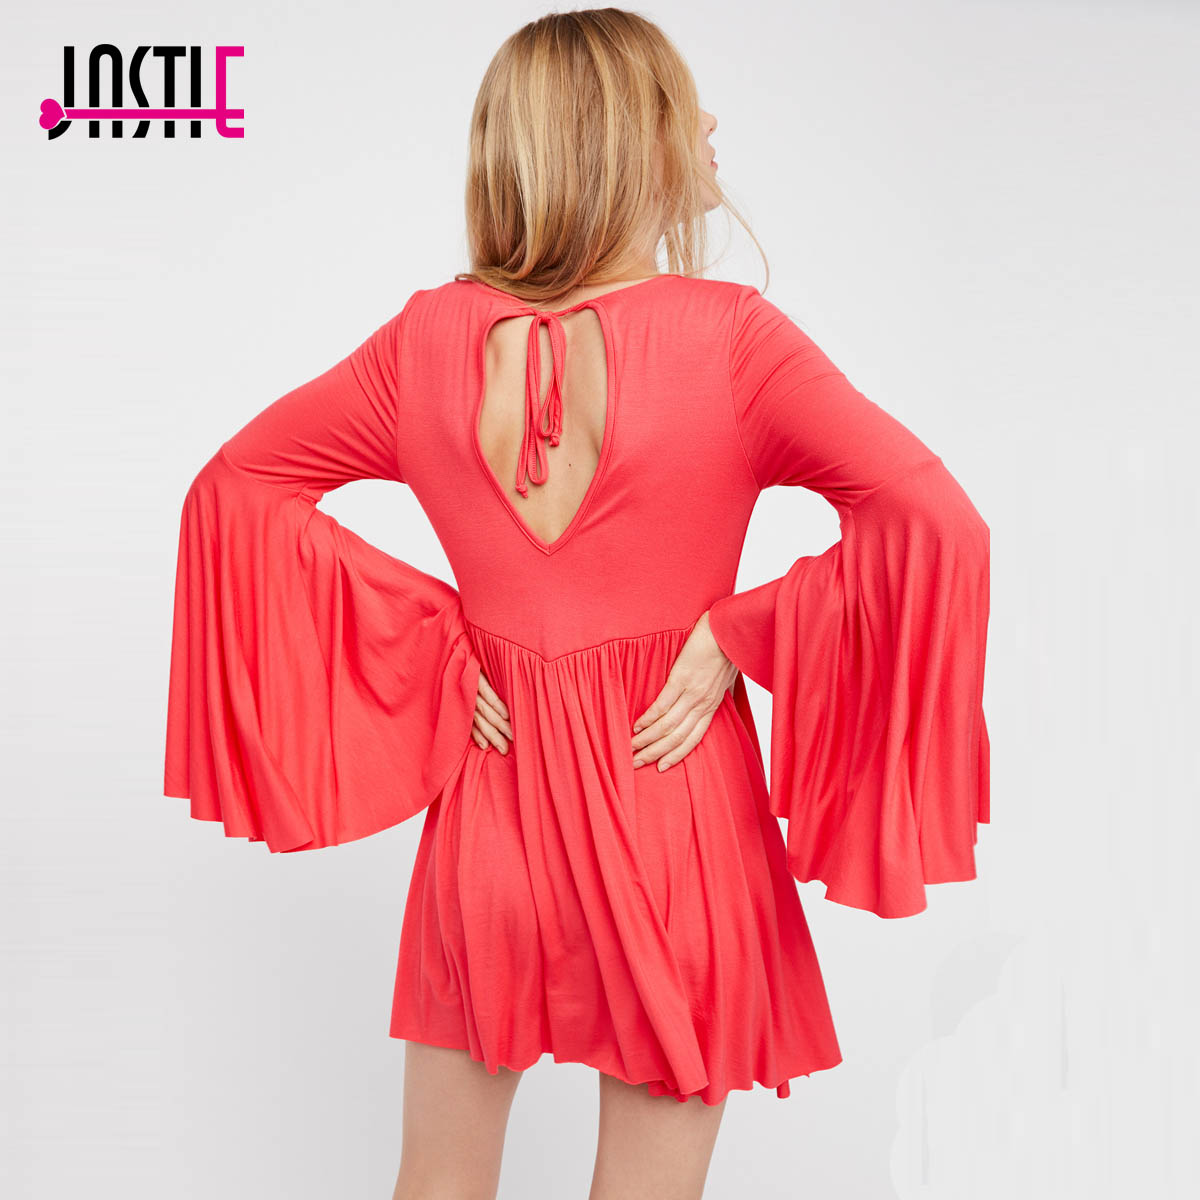 Jastie Babydoll Mini Dress V-Neck Bell Sleeve Short Dress Unfinished Trim Boho People Casual Beach Dresses 2017 Women Vestidos